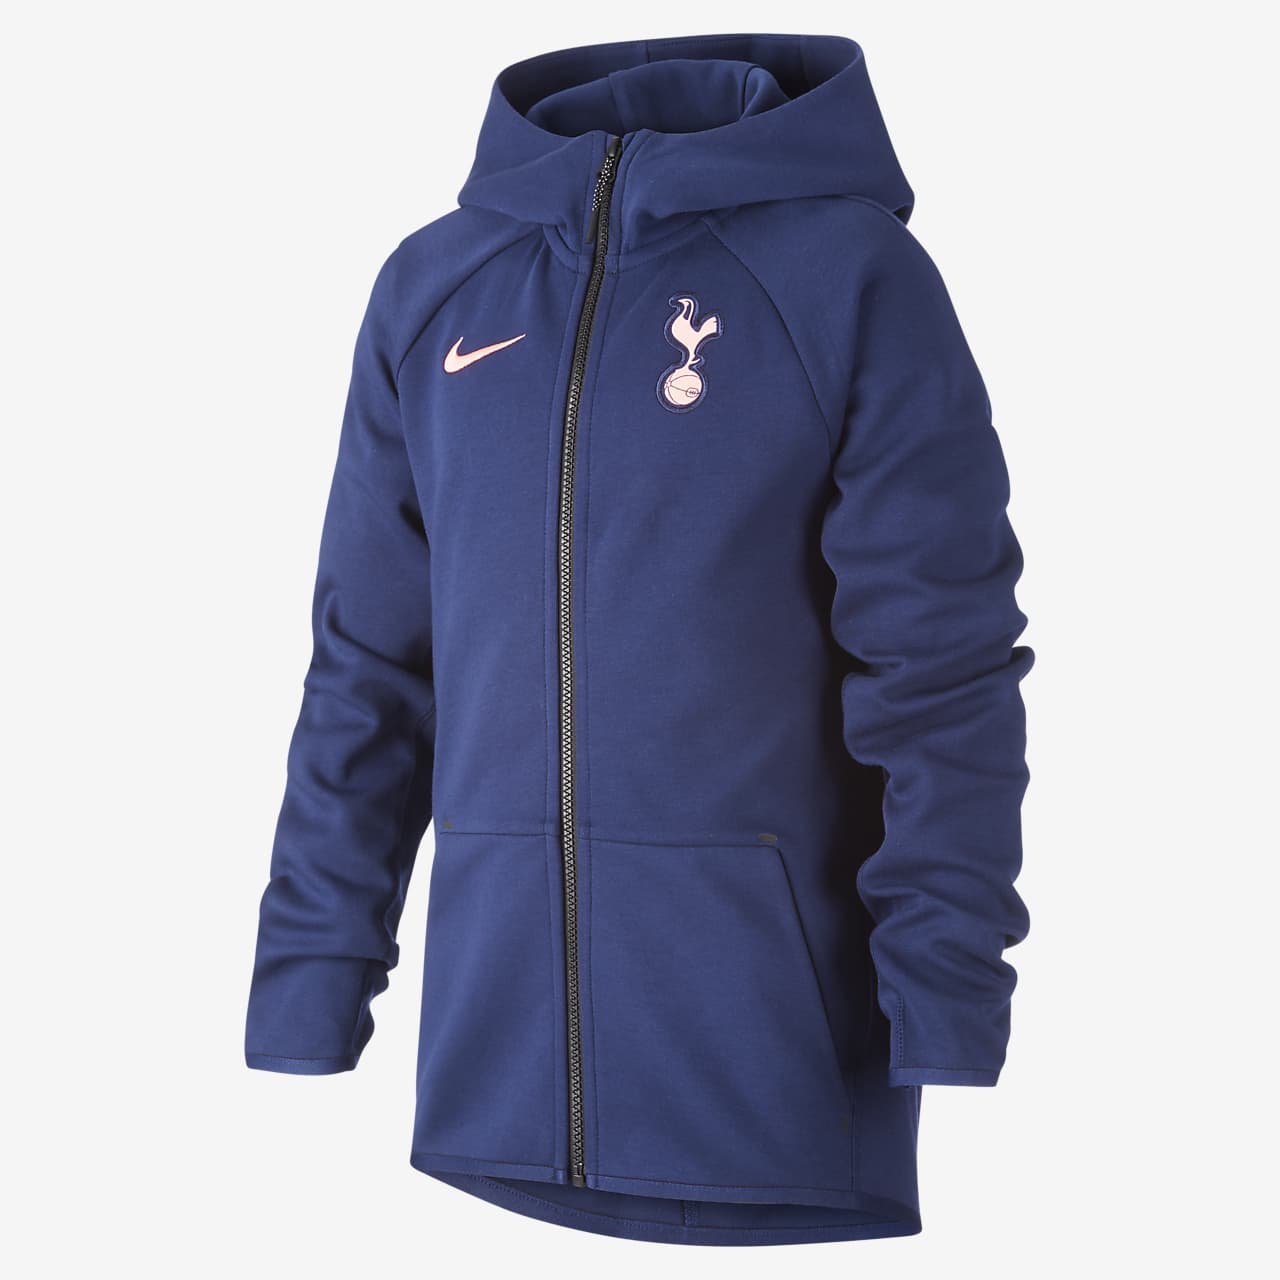 Tottenham Hotspur Tech Fleece Older Kids' Full-Zip Football Hoodie